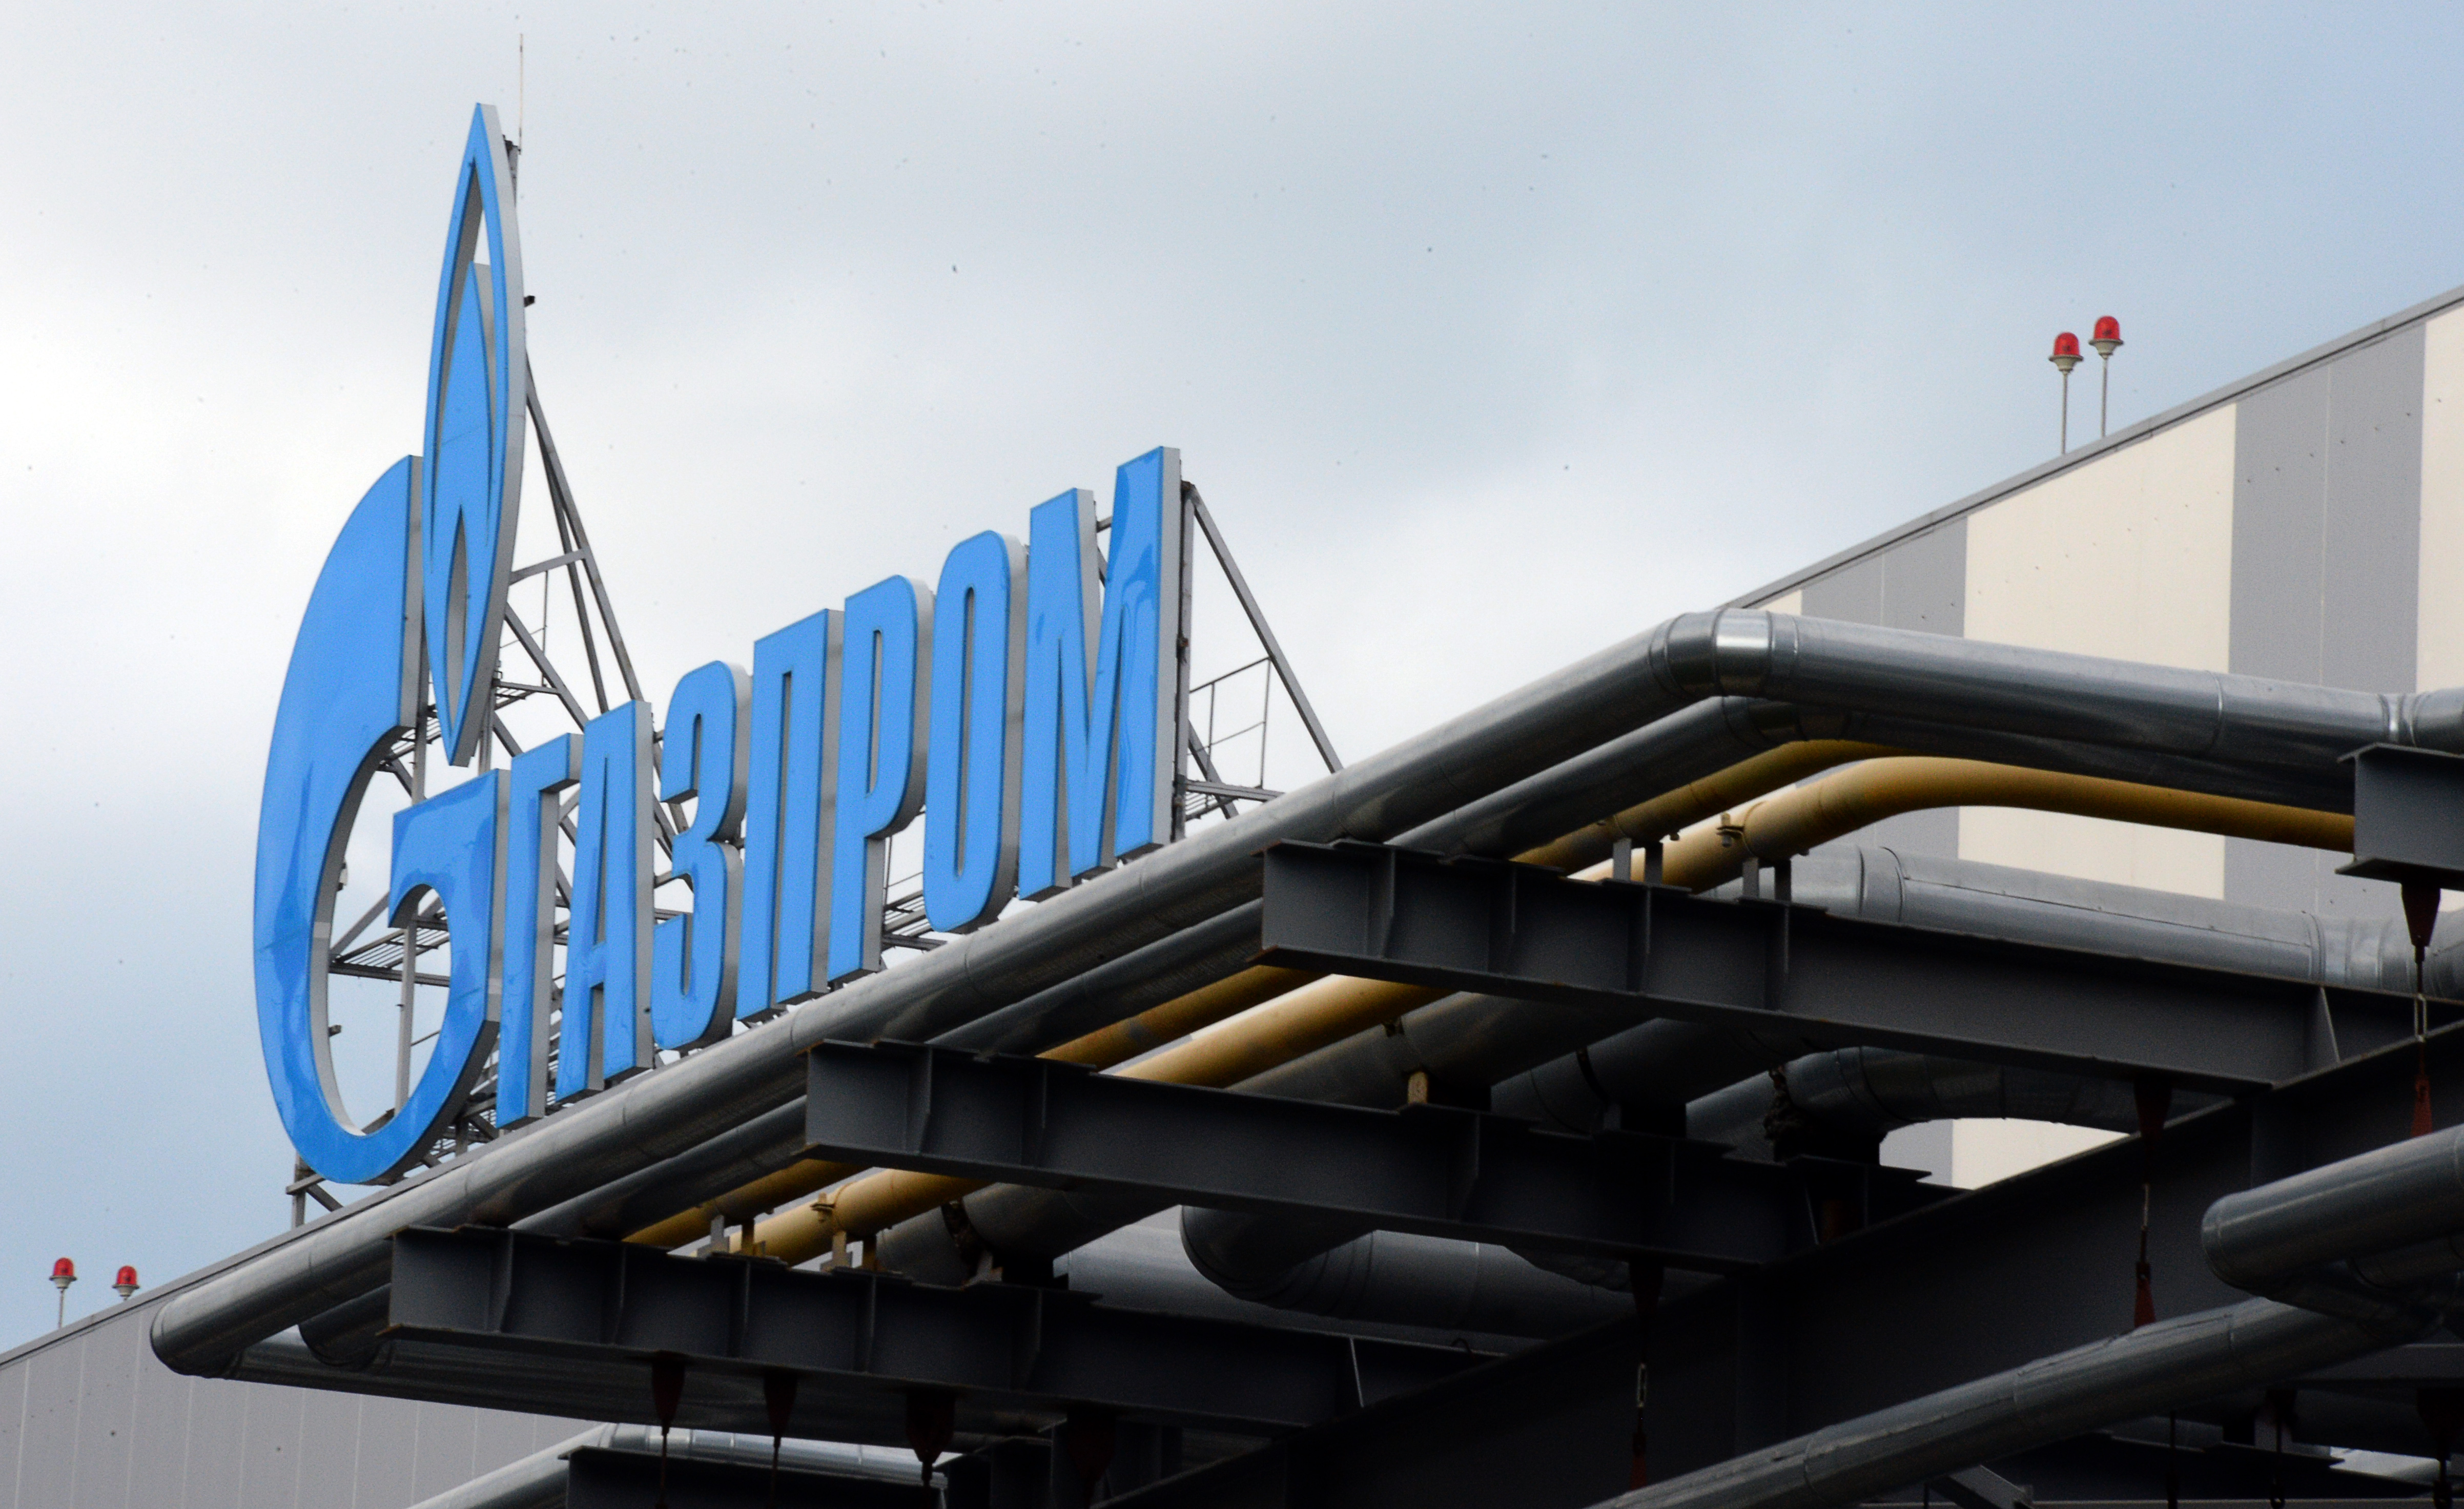 Gazprom's logo. (Yuri Kadobnov/AFP/Getty Images)